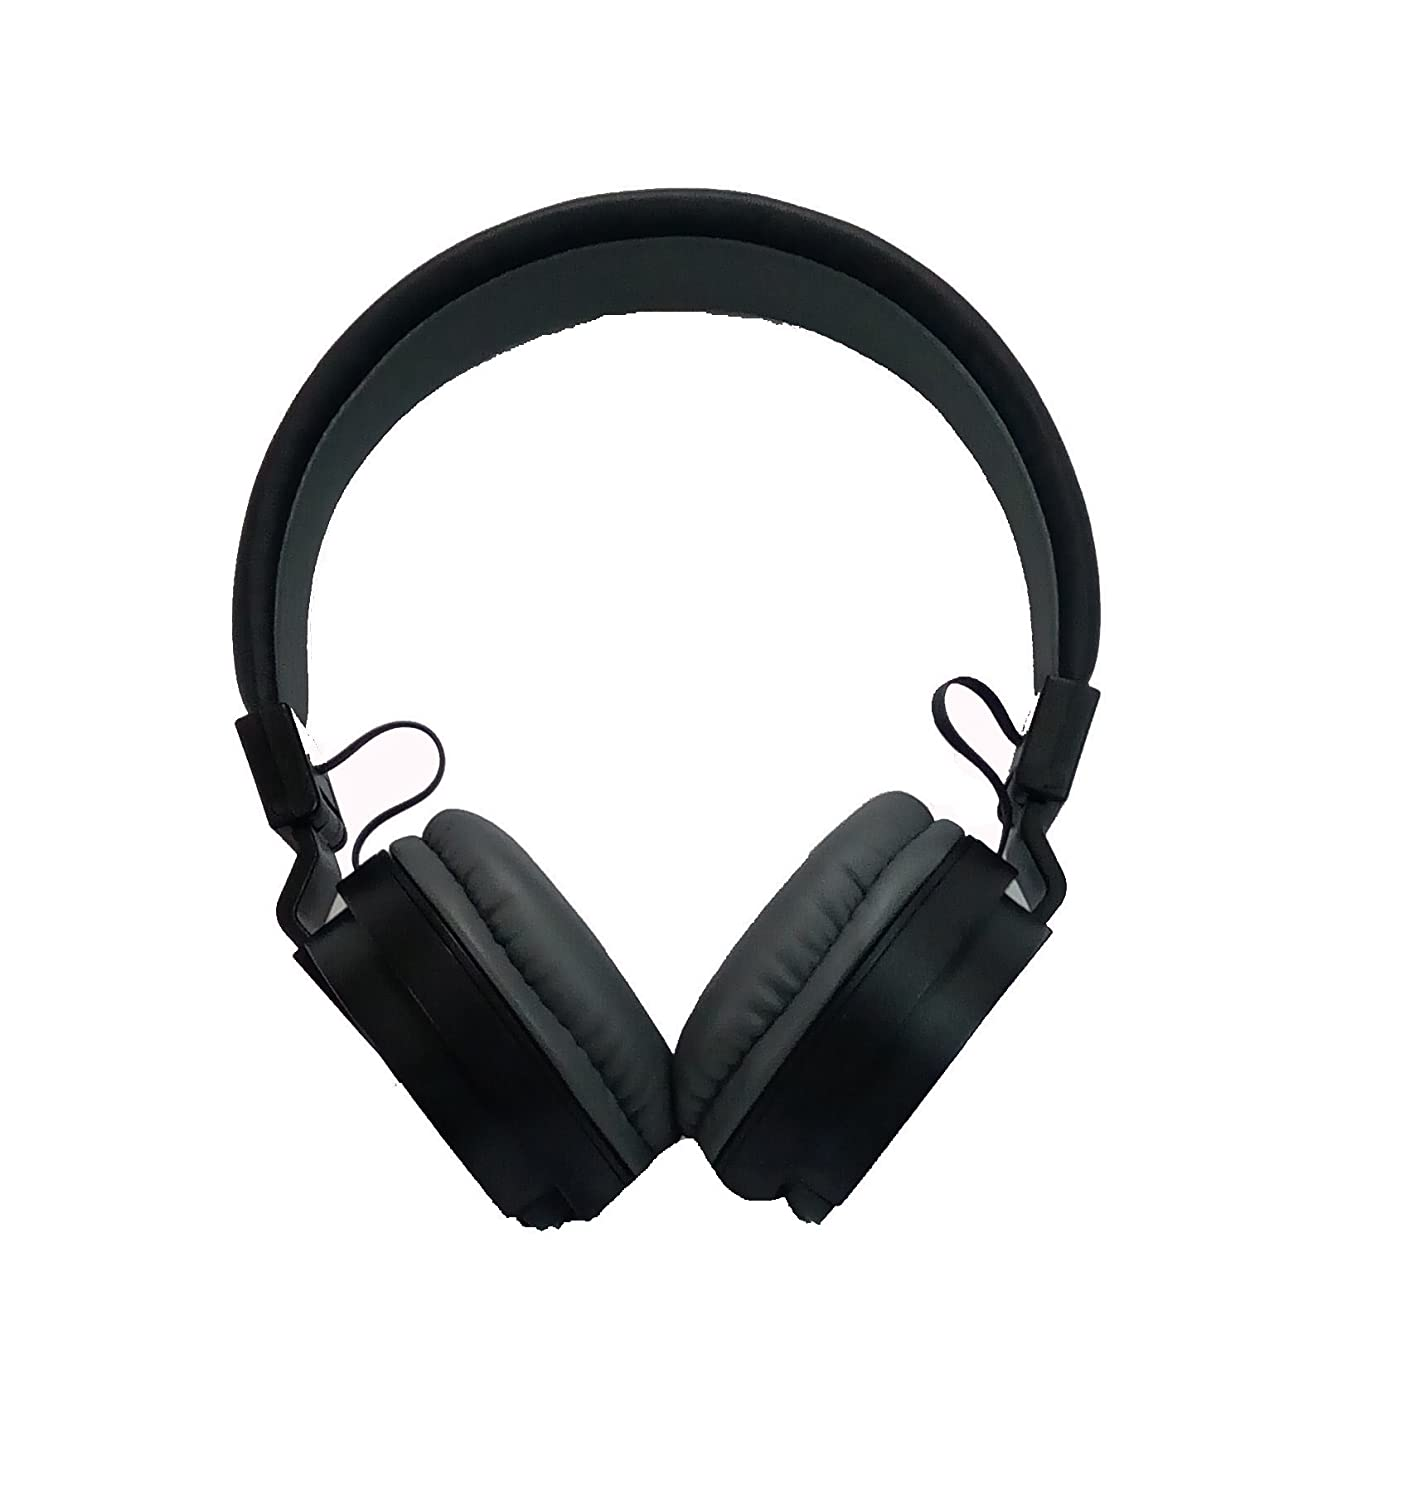 d01bd556d73 Amazon.in: Buy Corseca 3213 HD Stereo Sound On Ear Light Wired Headphones  with Mic and 40mm Drivers for Enhanced Bass (Black) Online at Low Prices in  India ...